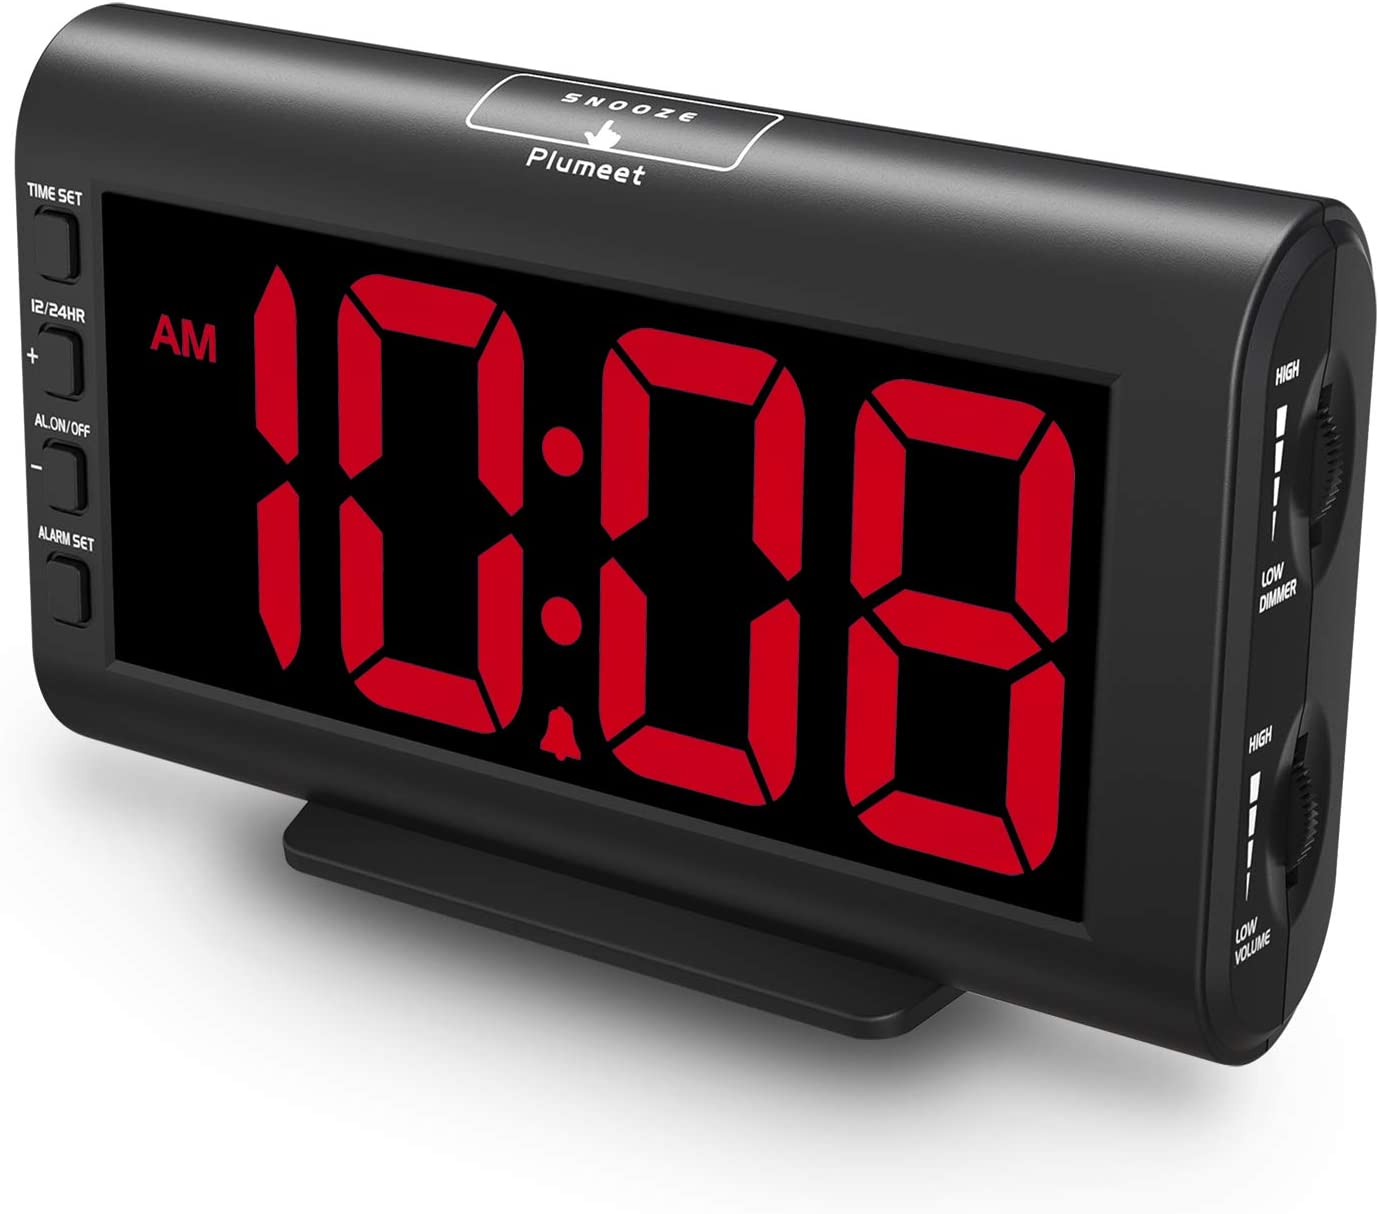 Plumeet Digital Alarm Clocks 5.3'' Special price for a limited time LED Max 69% OFF Large Adjustable Screen